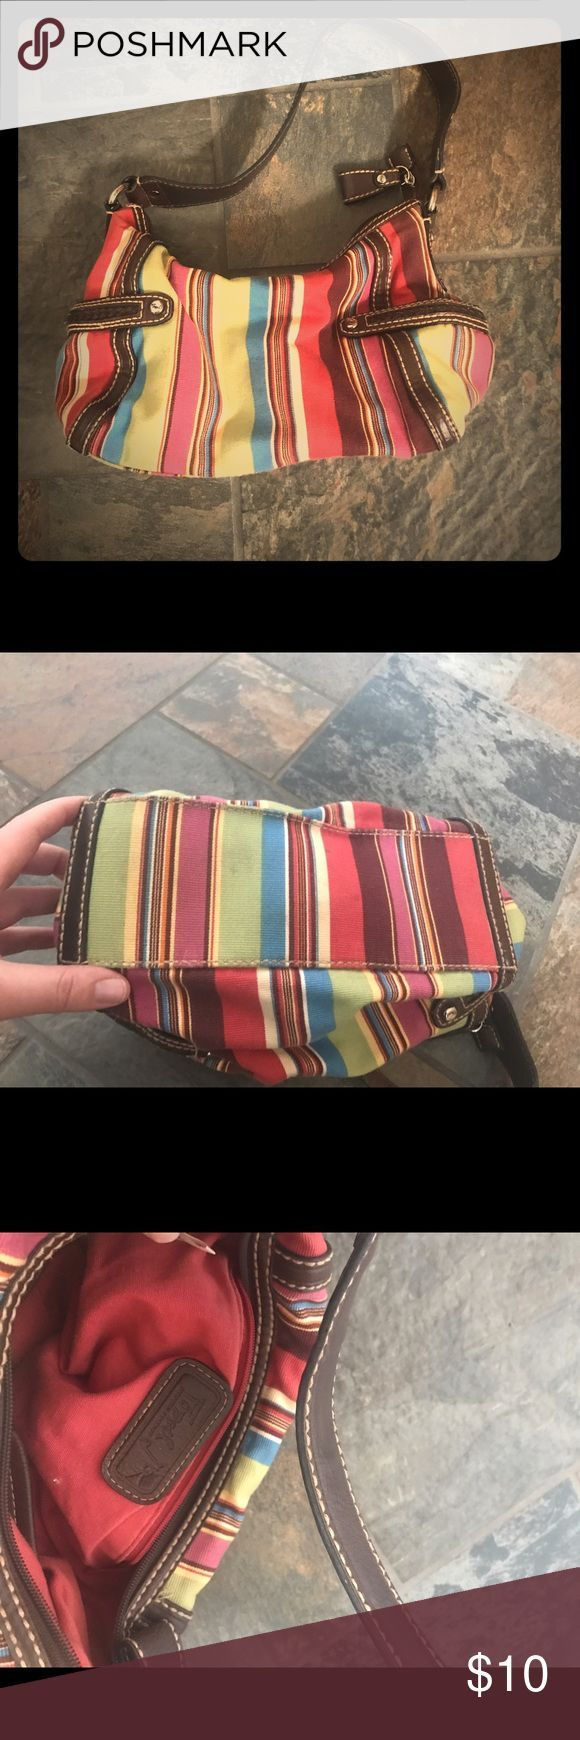 Fossil hand bag Cute stripped Fossil hand bag. Used a couple times but don't have much use for it anymore. 😀 Fossil Bags Mini Bags - branded purse for ladies, handbag sale, handbags & purses *sponsored https://www.pinterest.com/purses_handbags/ https://www.pinterest.com/explore/handbag/ https://www.pinterest.com/purses_handbags/radley-handbags/ https://www.therealreal.com/shop/women/handbags